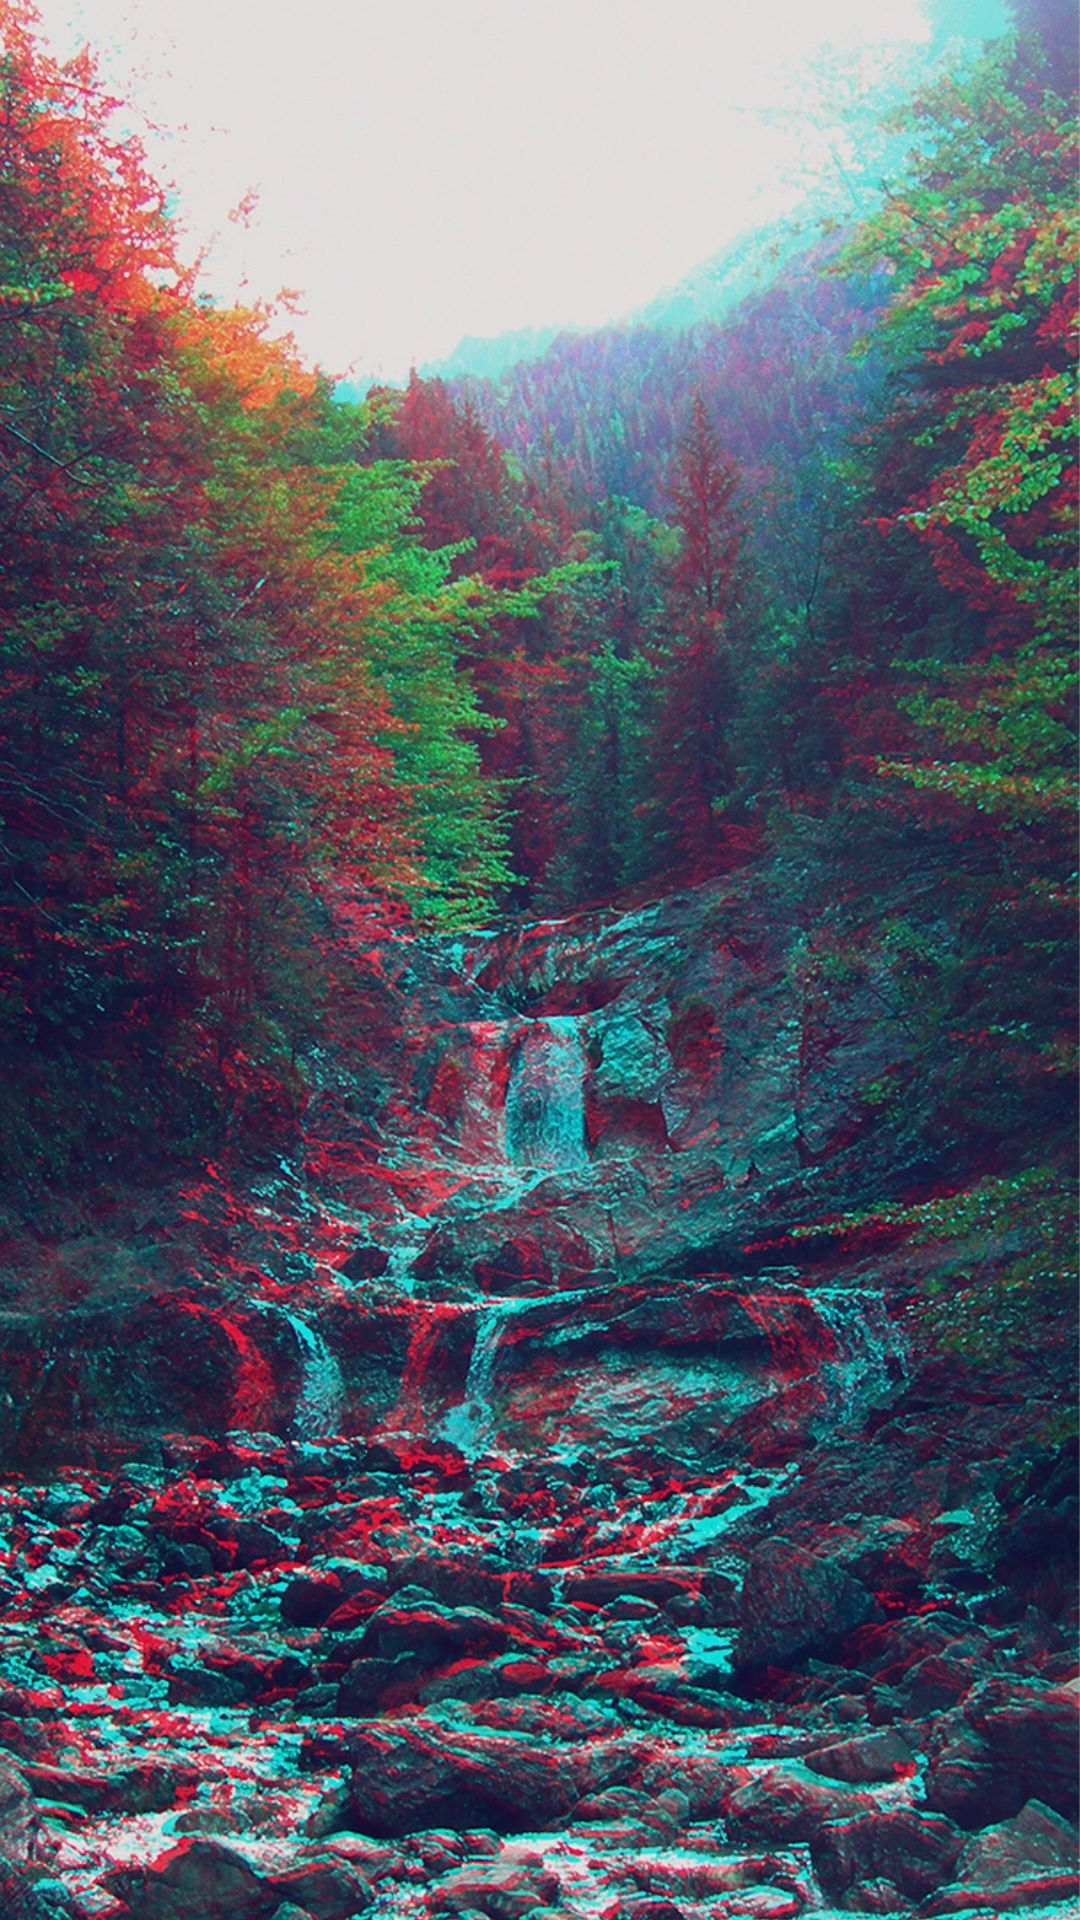 Cool Trippy Scenery Iphone Wallpapers Top Free Cool Trippy